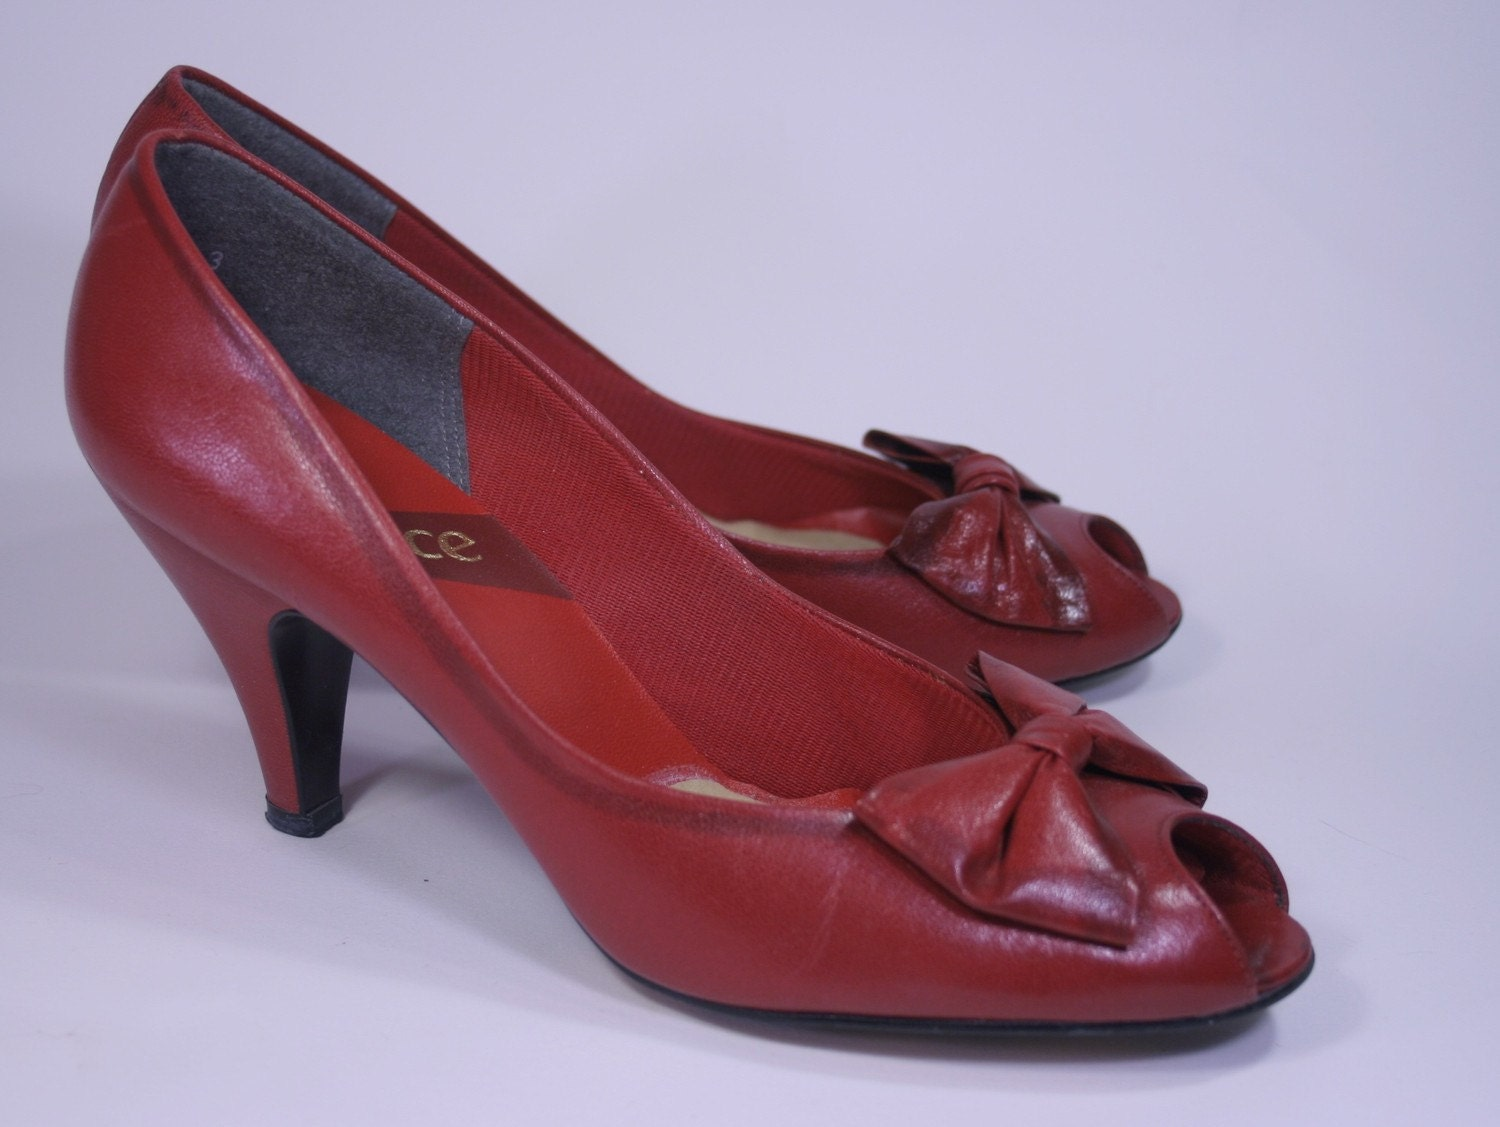 Vintage Cherry Red Peep Toe with Bow Betty Boop Pin Up Leather High Heels, Womens 7